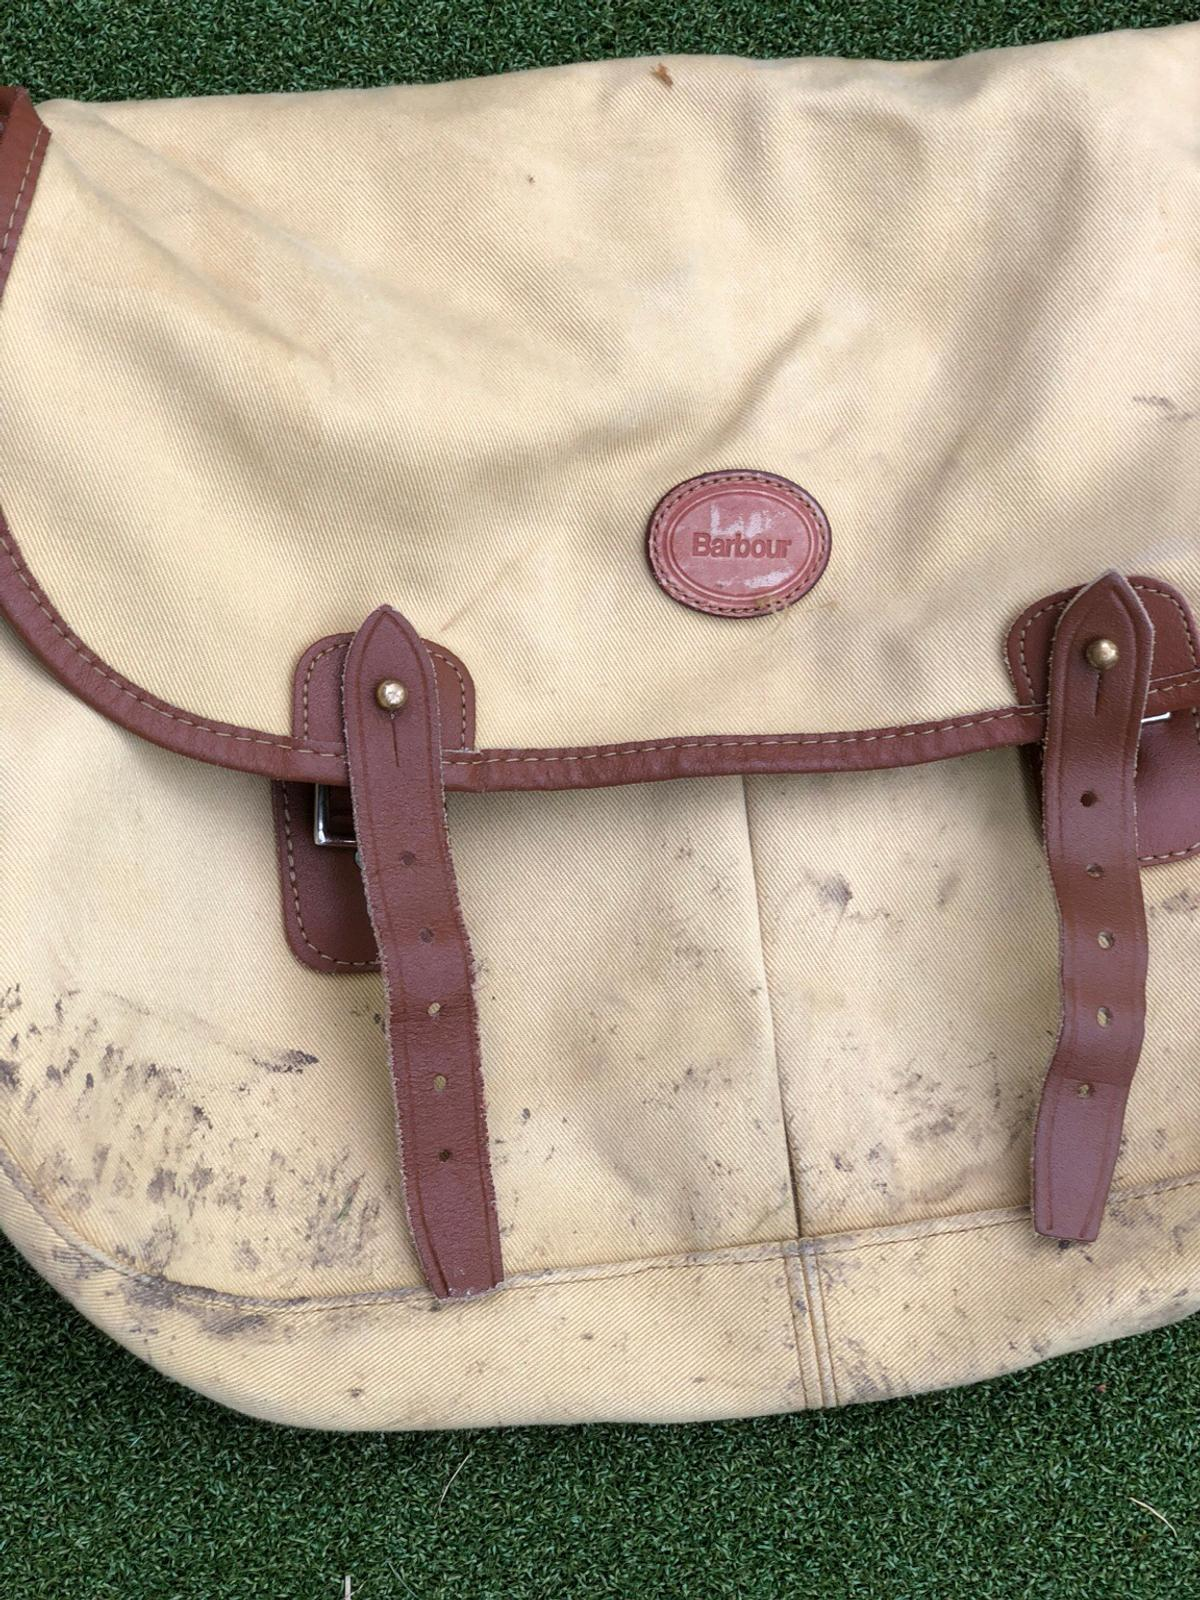 torr Pegs Faktura  Barbour game bag in CB23 Cambridgeshire for £10.00 for sale | Shpock